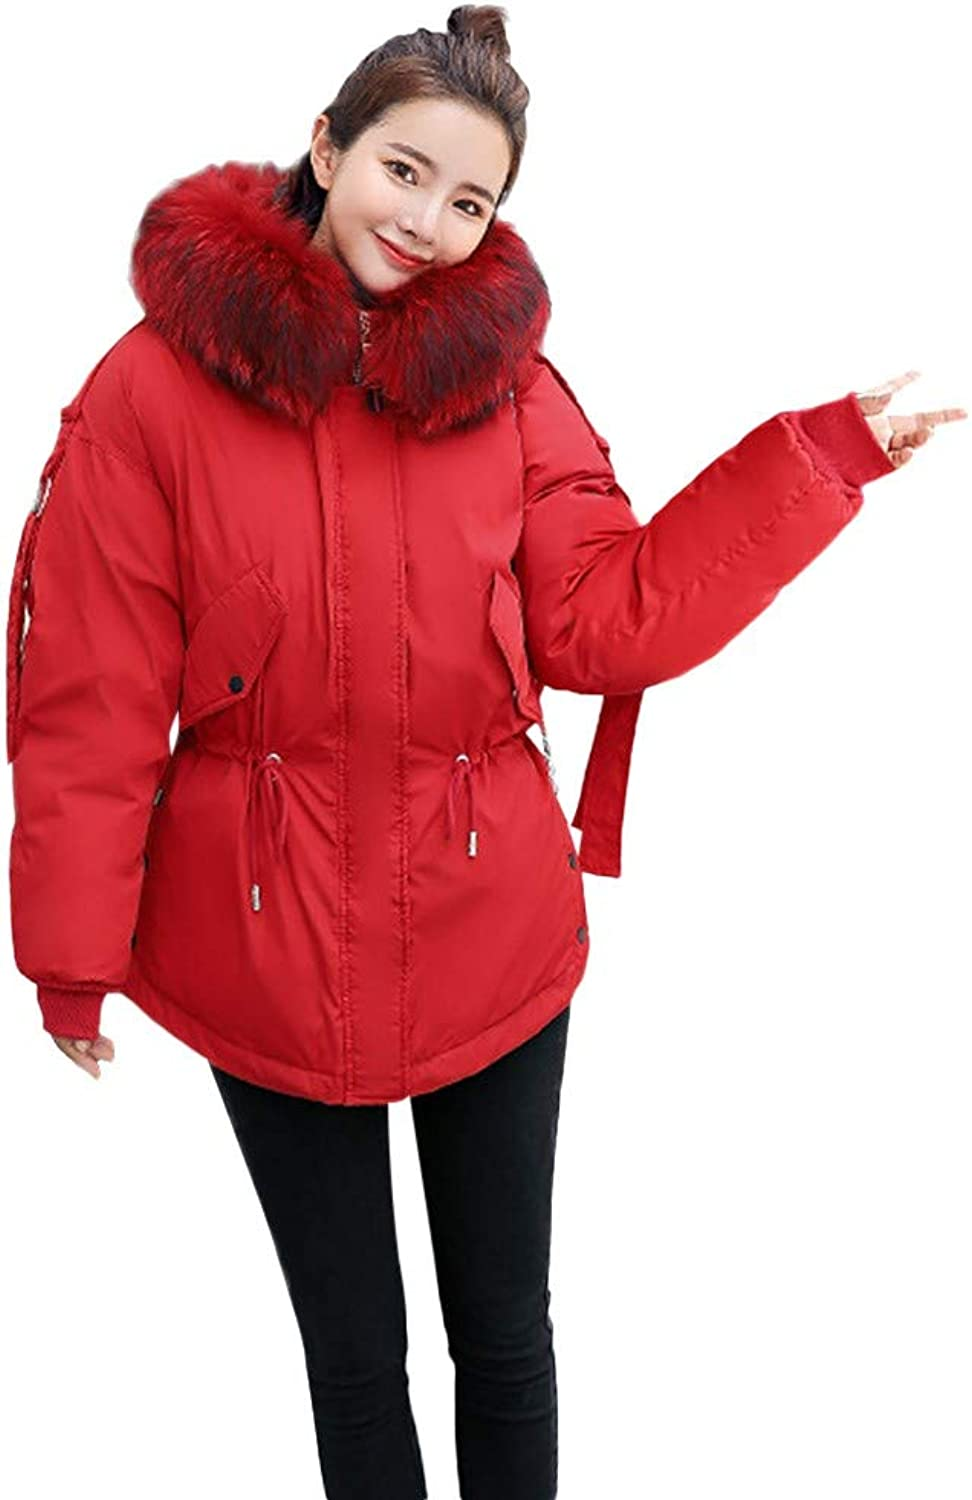 Aries Esther Women's Down Cotton Coat Parka Winter Hooded Jacket Outwear